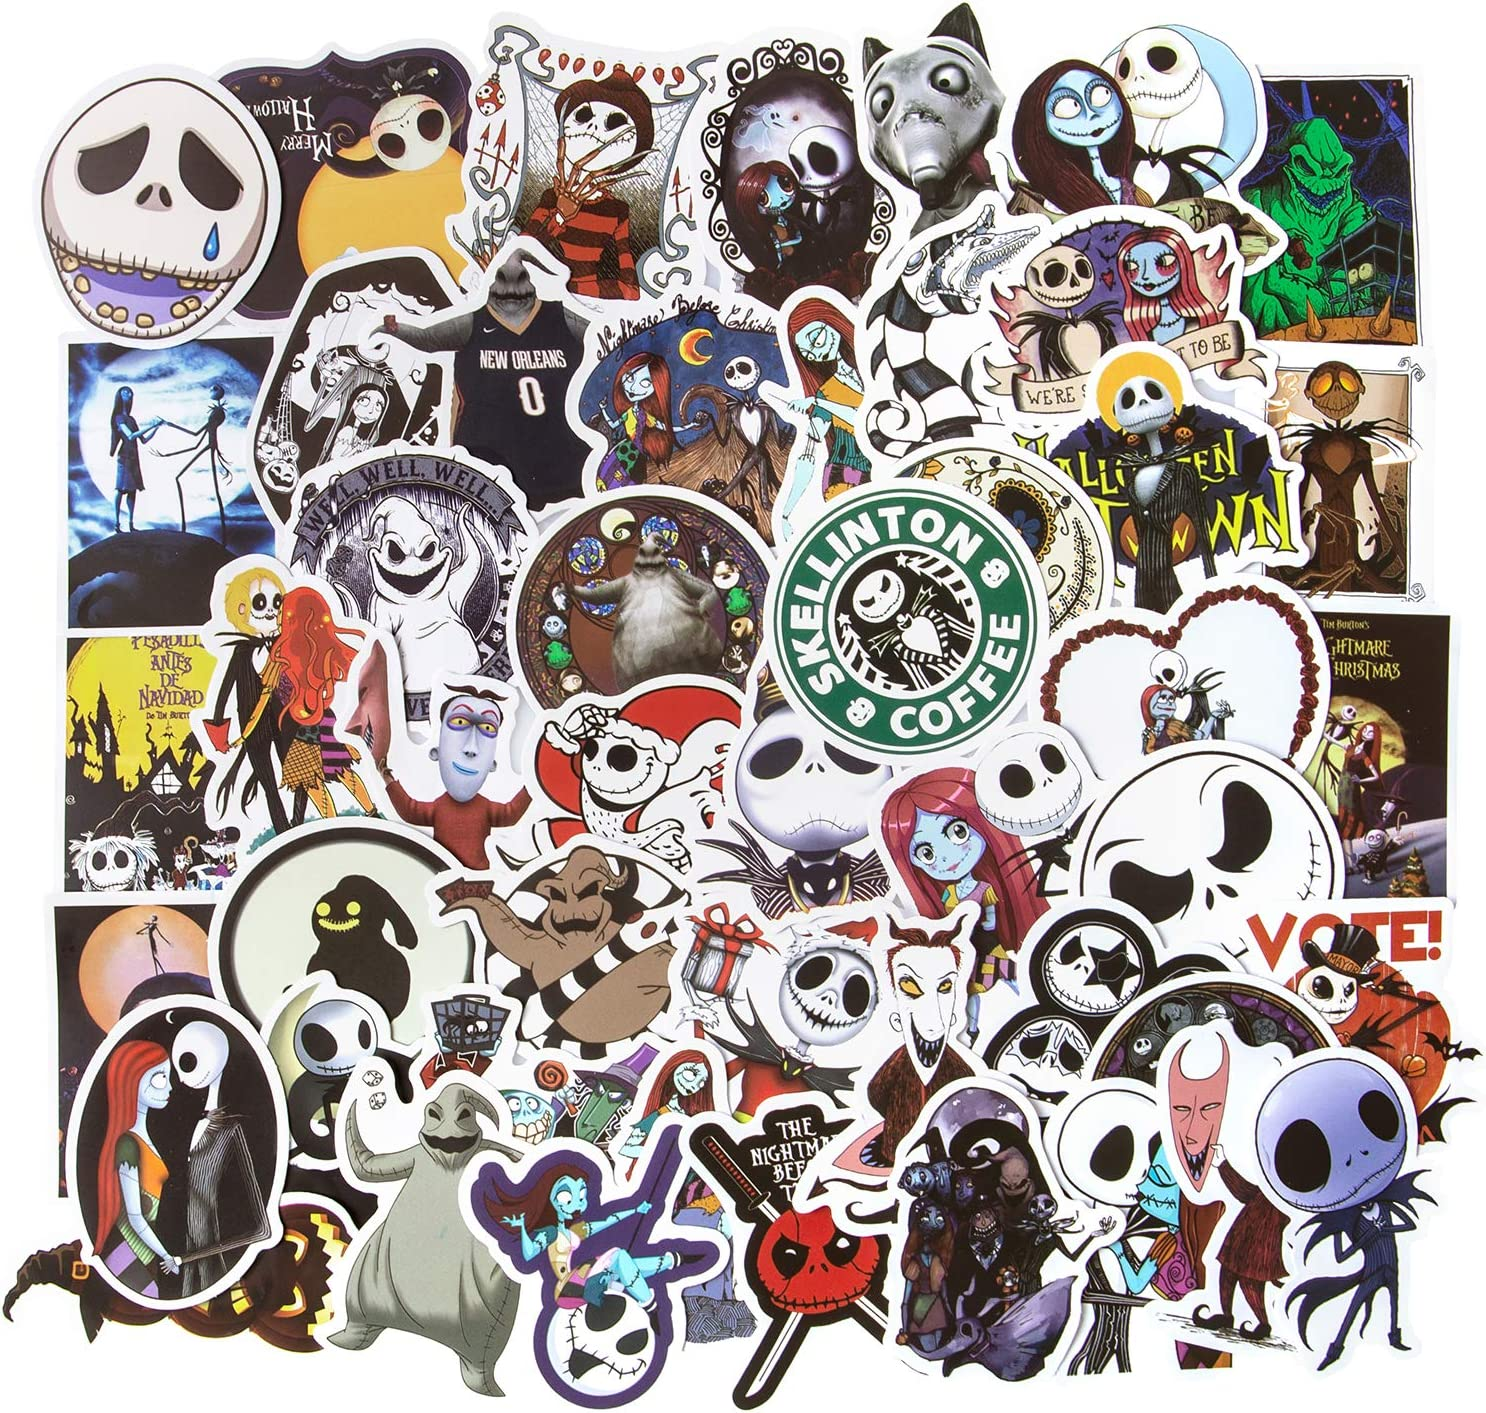 Halloween Stickers, 50pcs The Nightmare Before Christmas Stickers, Laptop Stickers Skateboard Stickers for Teens Vinyl Waterproof Stickers for Water Bottles Luggage Bike Computer Stickers Decal